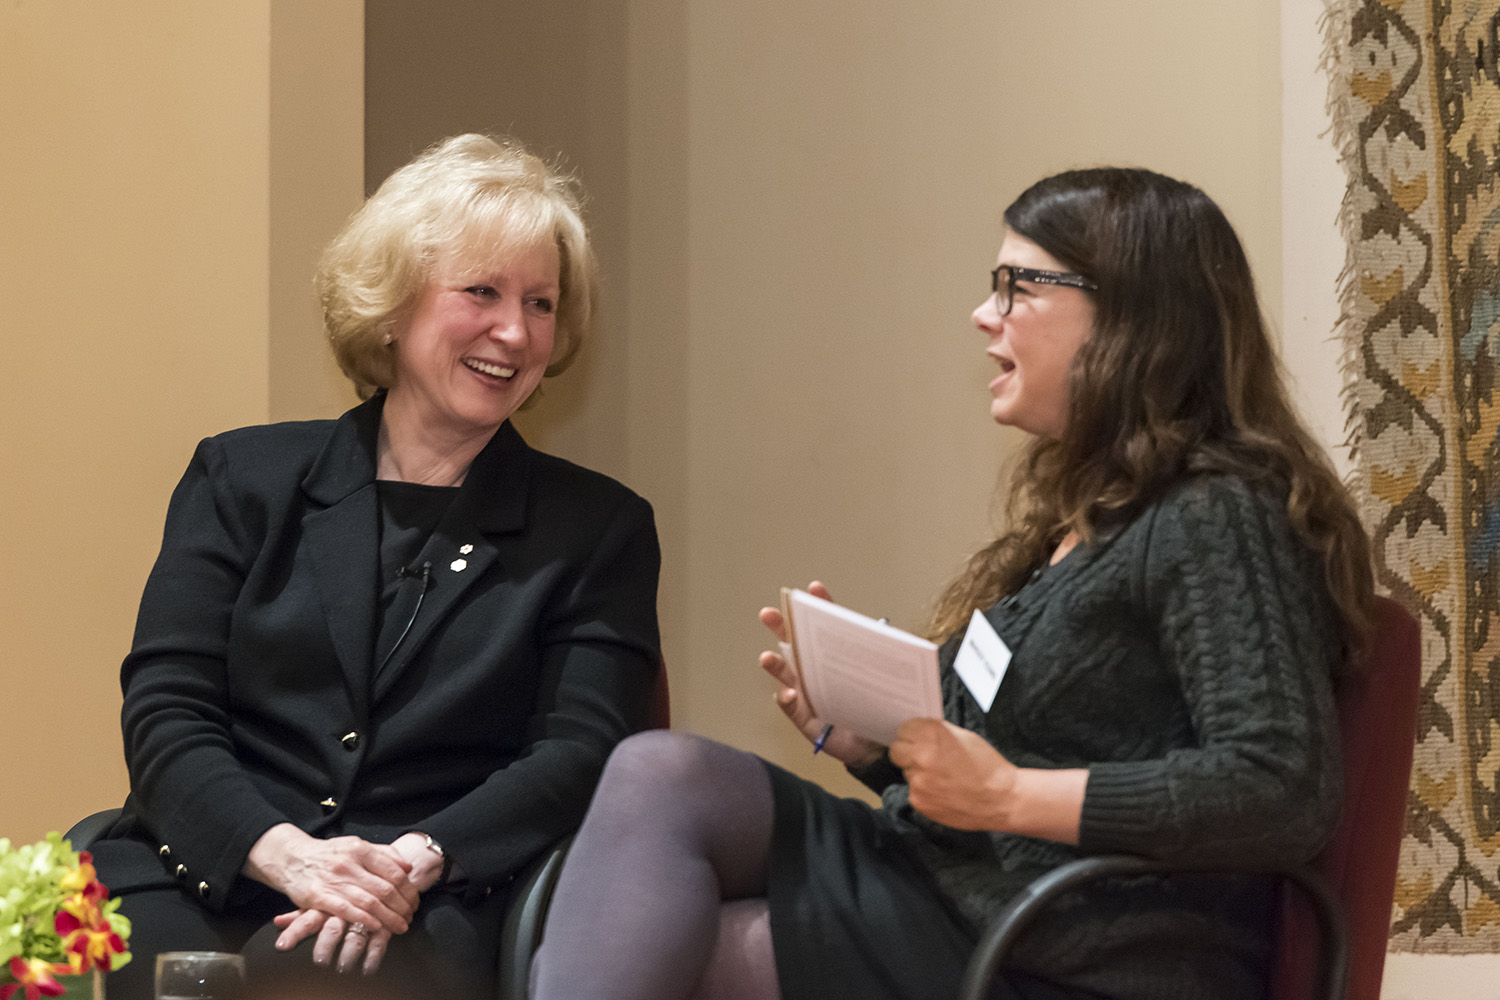 Kim Campbell sits down with Margot Young, Associate Professor of Law at the University of British Columbia, for an on-stage conversation following the Ismaili Centre lecture. Azim Verjee